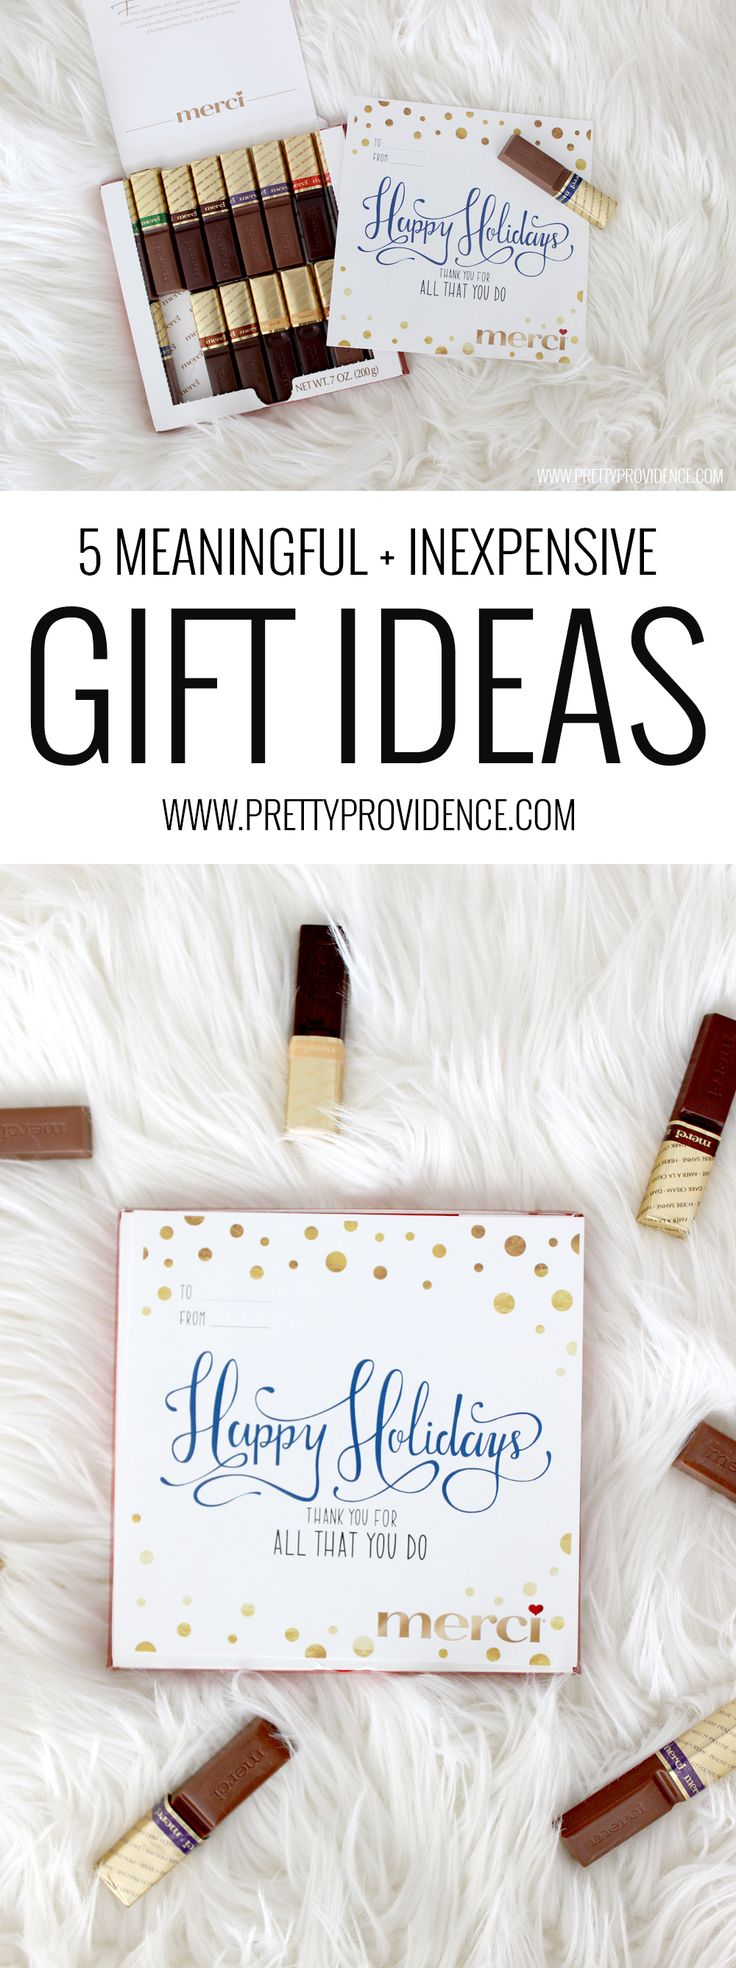 833 best Christmas Crafts images on Pinterest | Holiday ideas ...